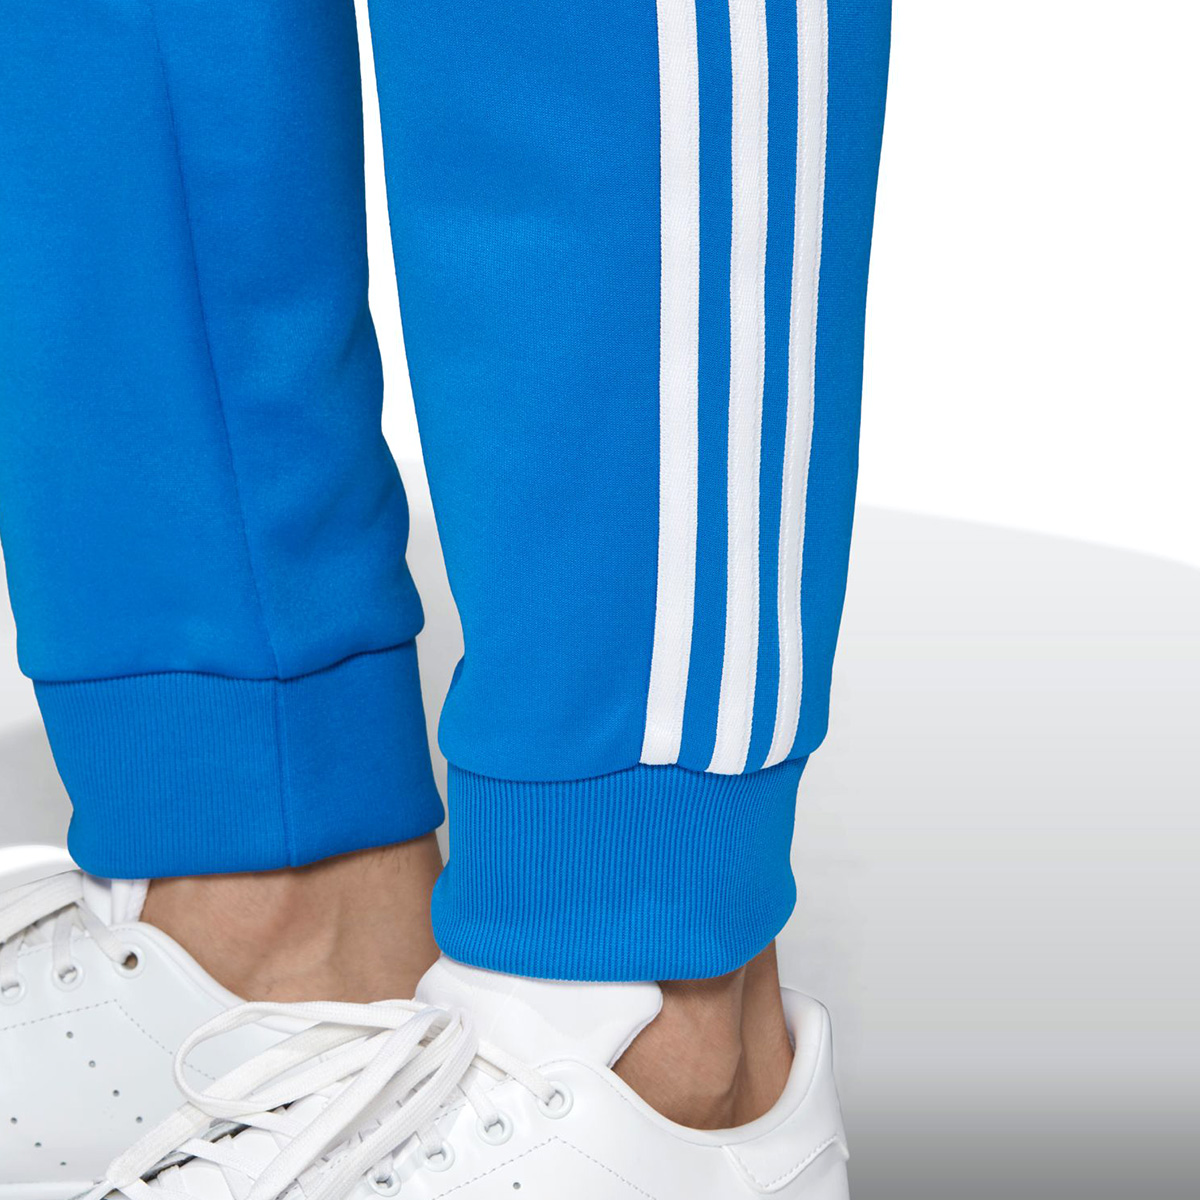 001d08a6 ... adidas SST TRACK PANTS Adidas SST trackpants BLUE BIRD ed6058 ...